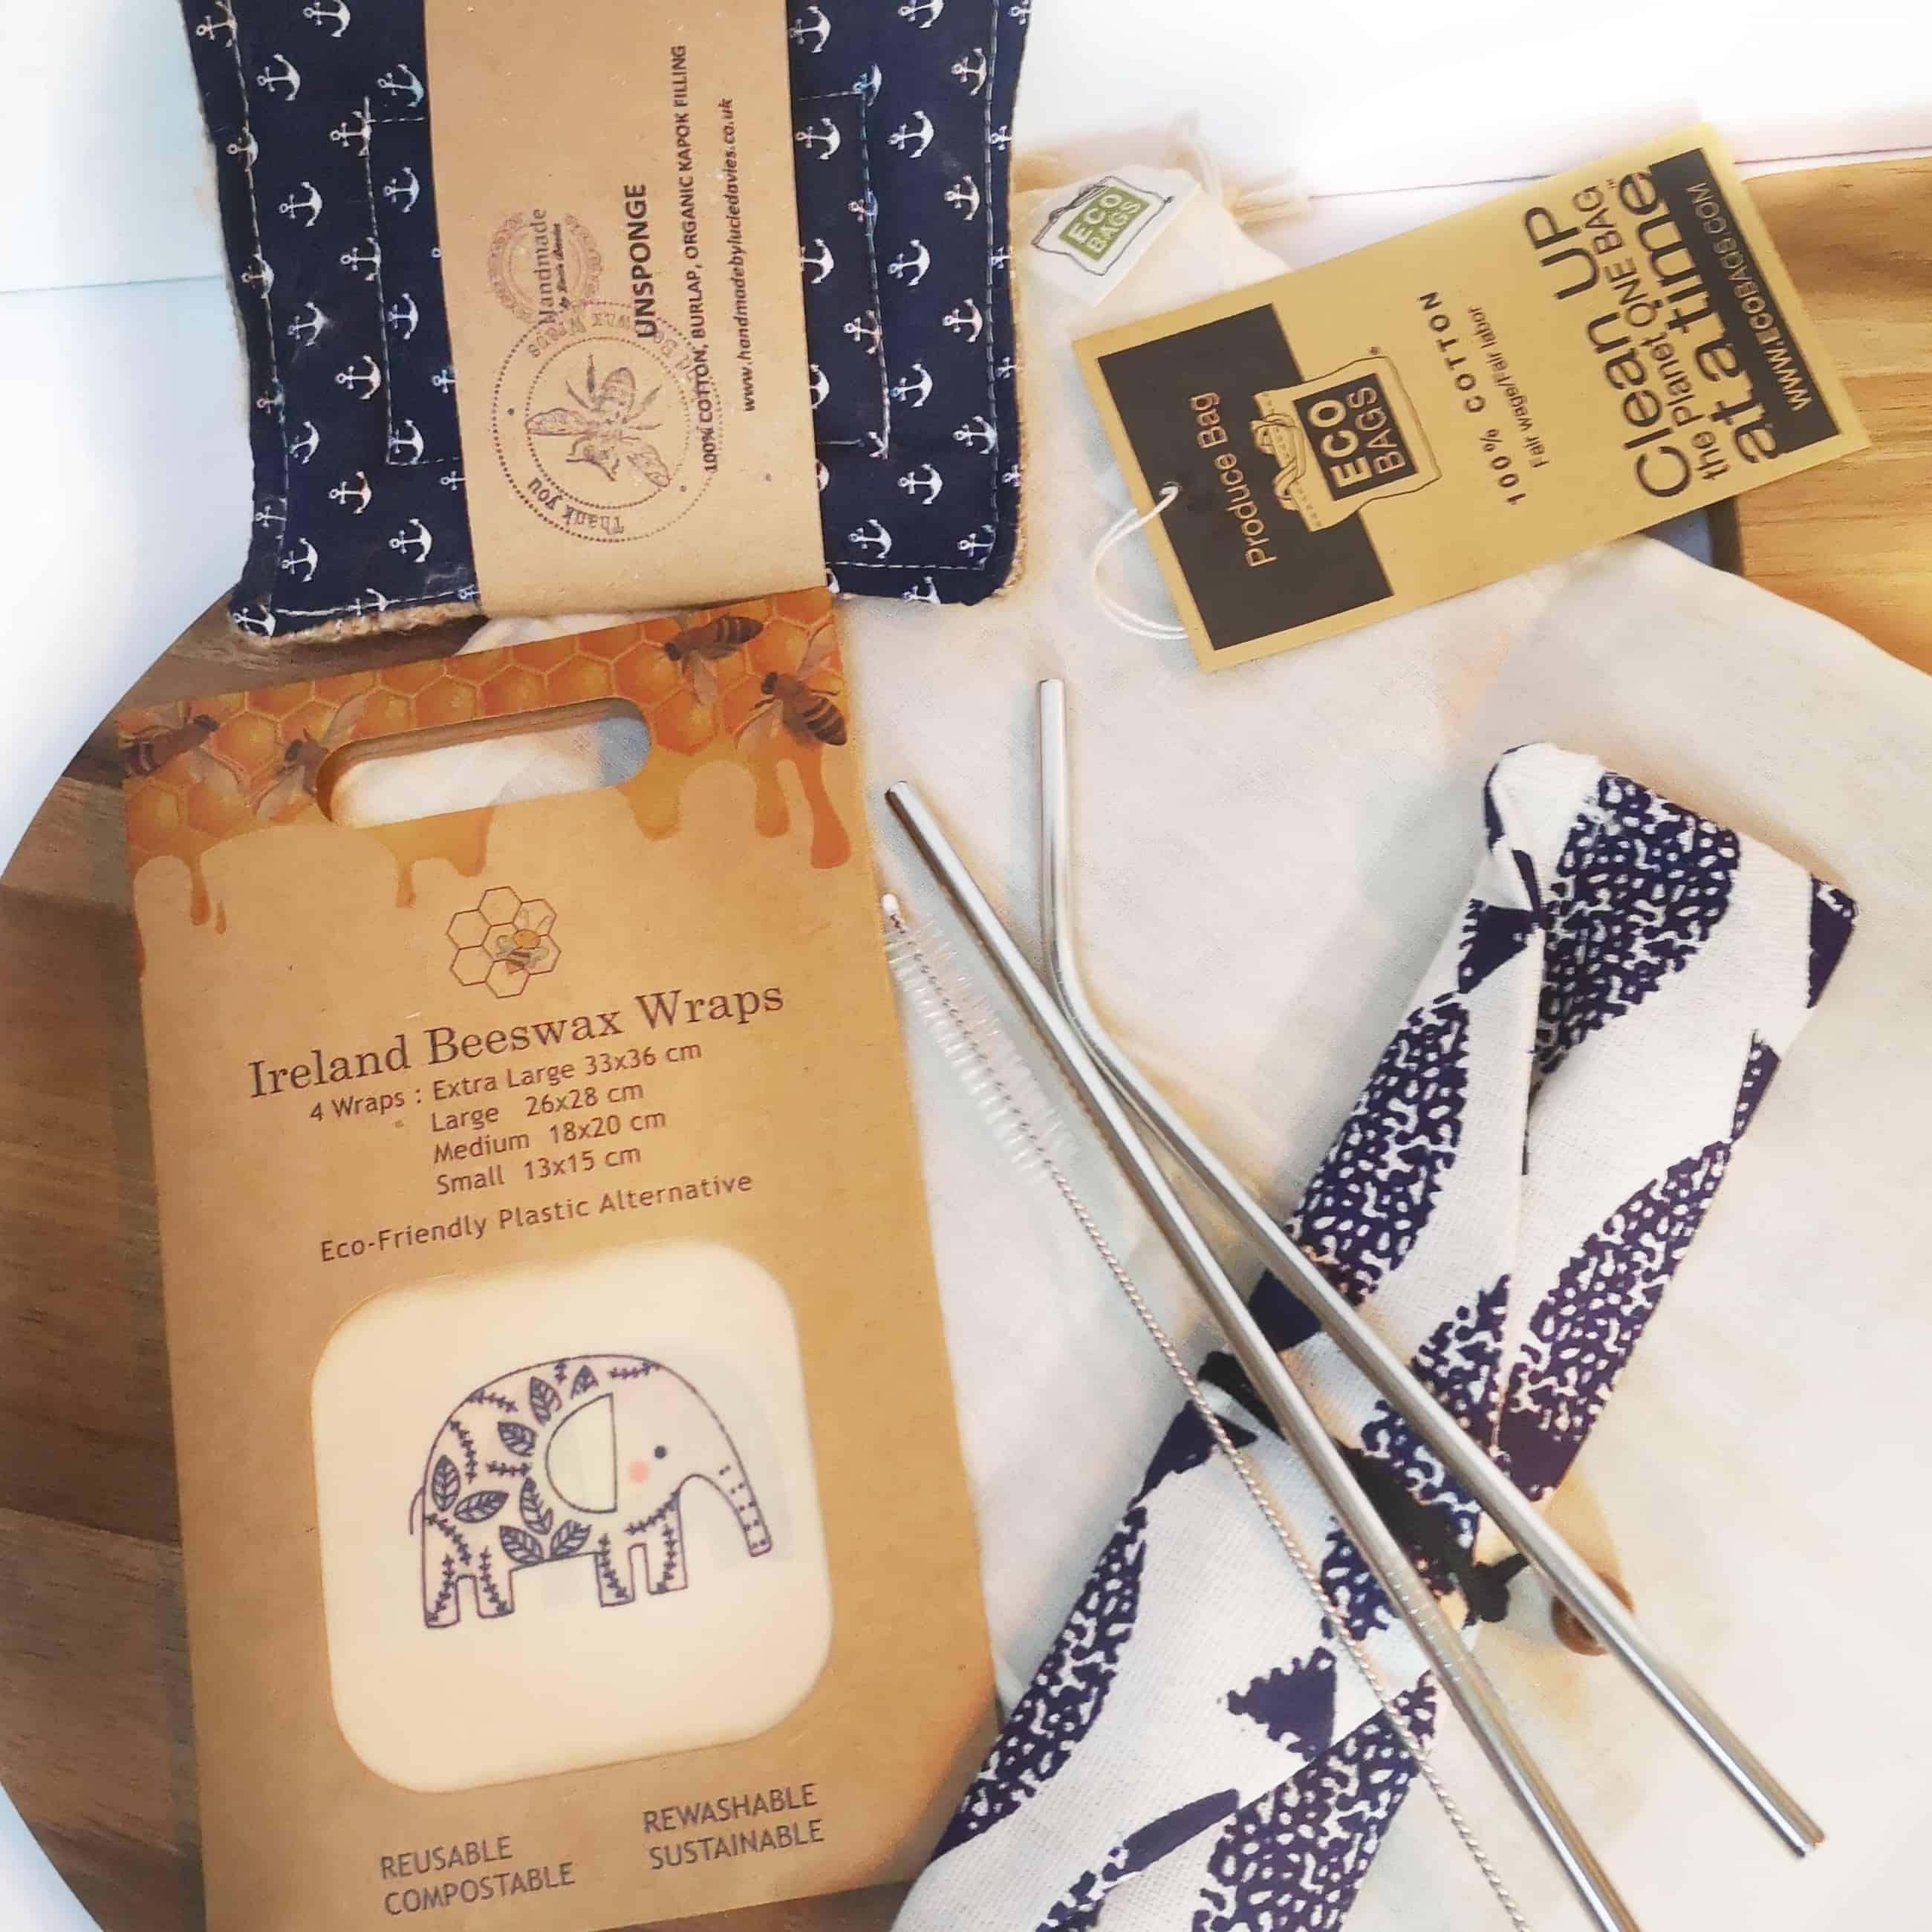 Zero Waste Kitchen Kit Ireland Beeswax Wraps